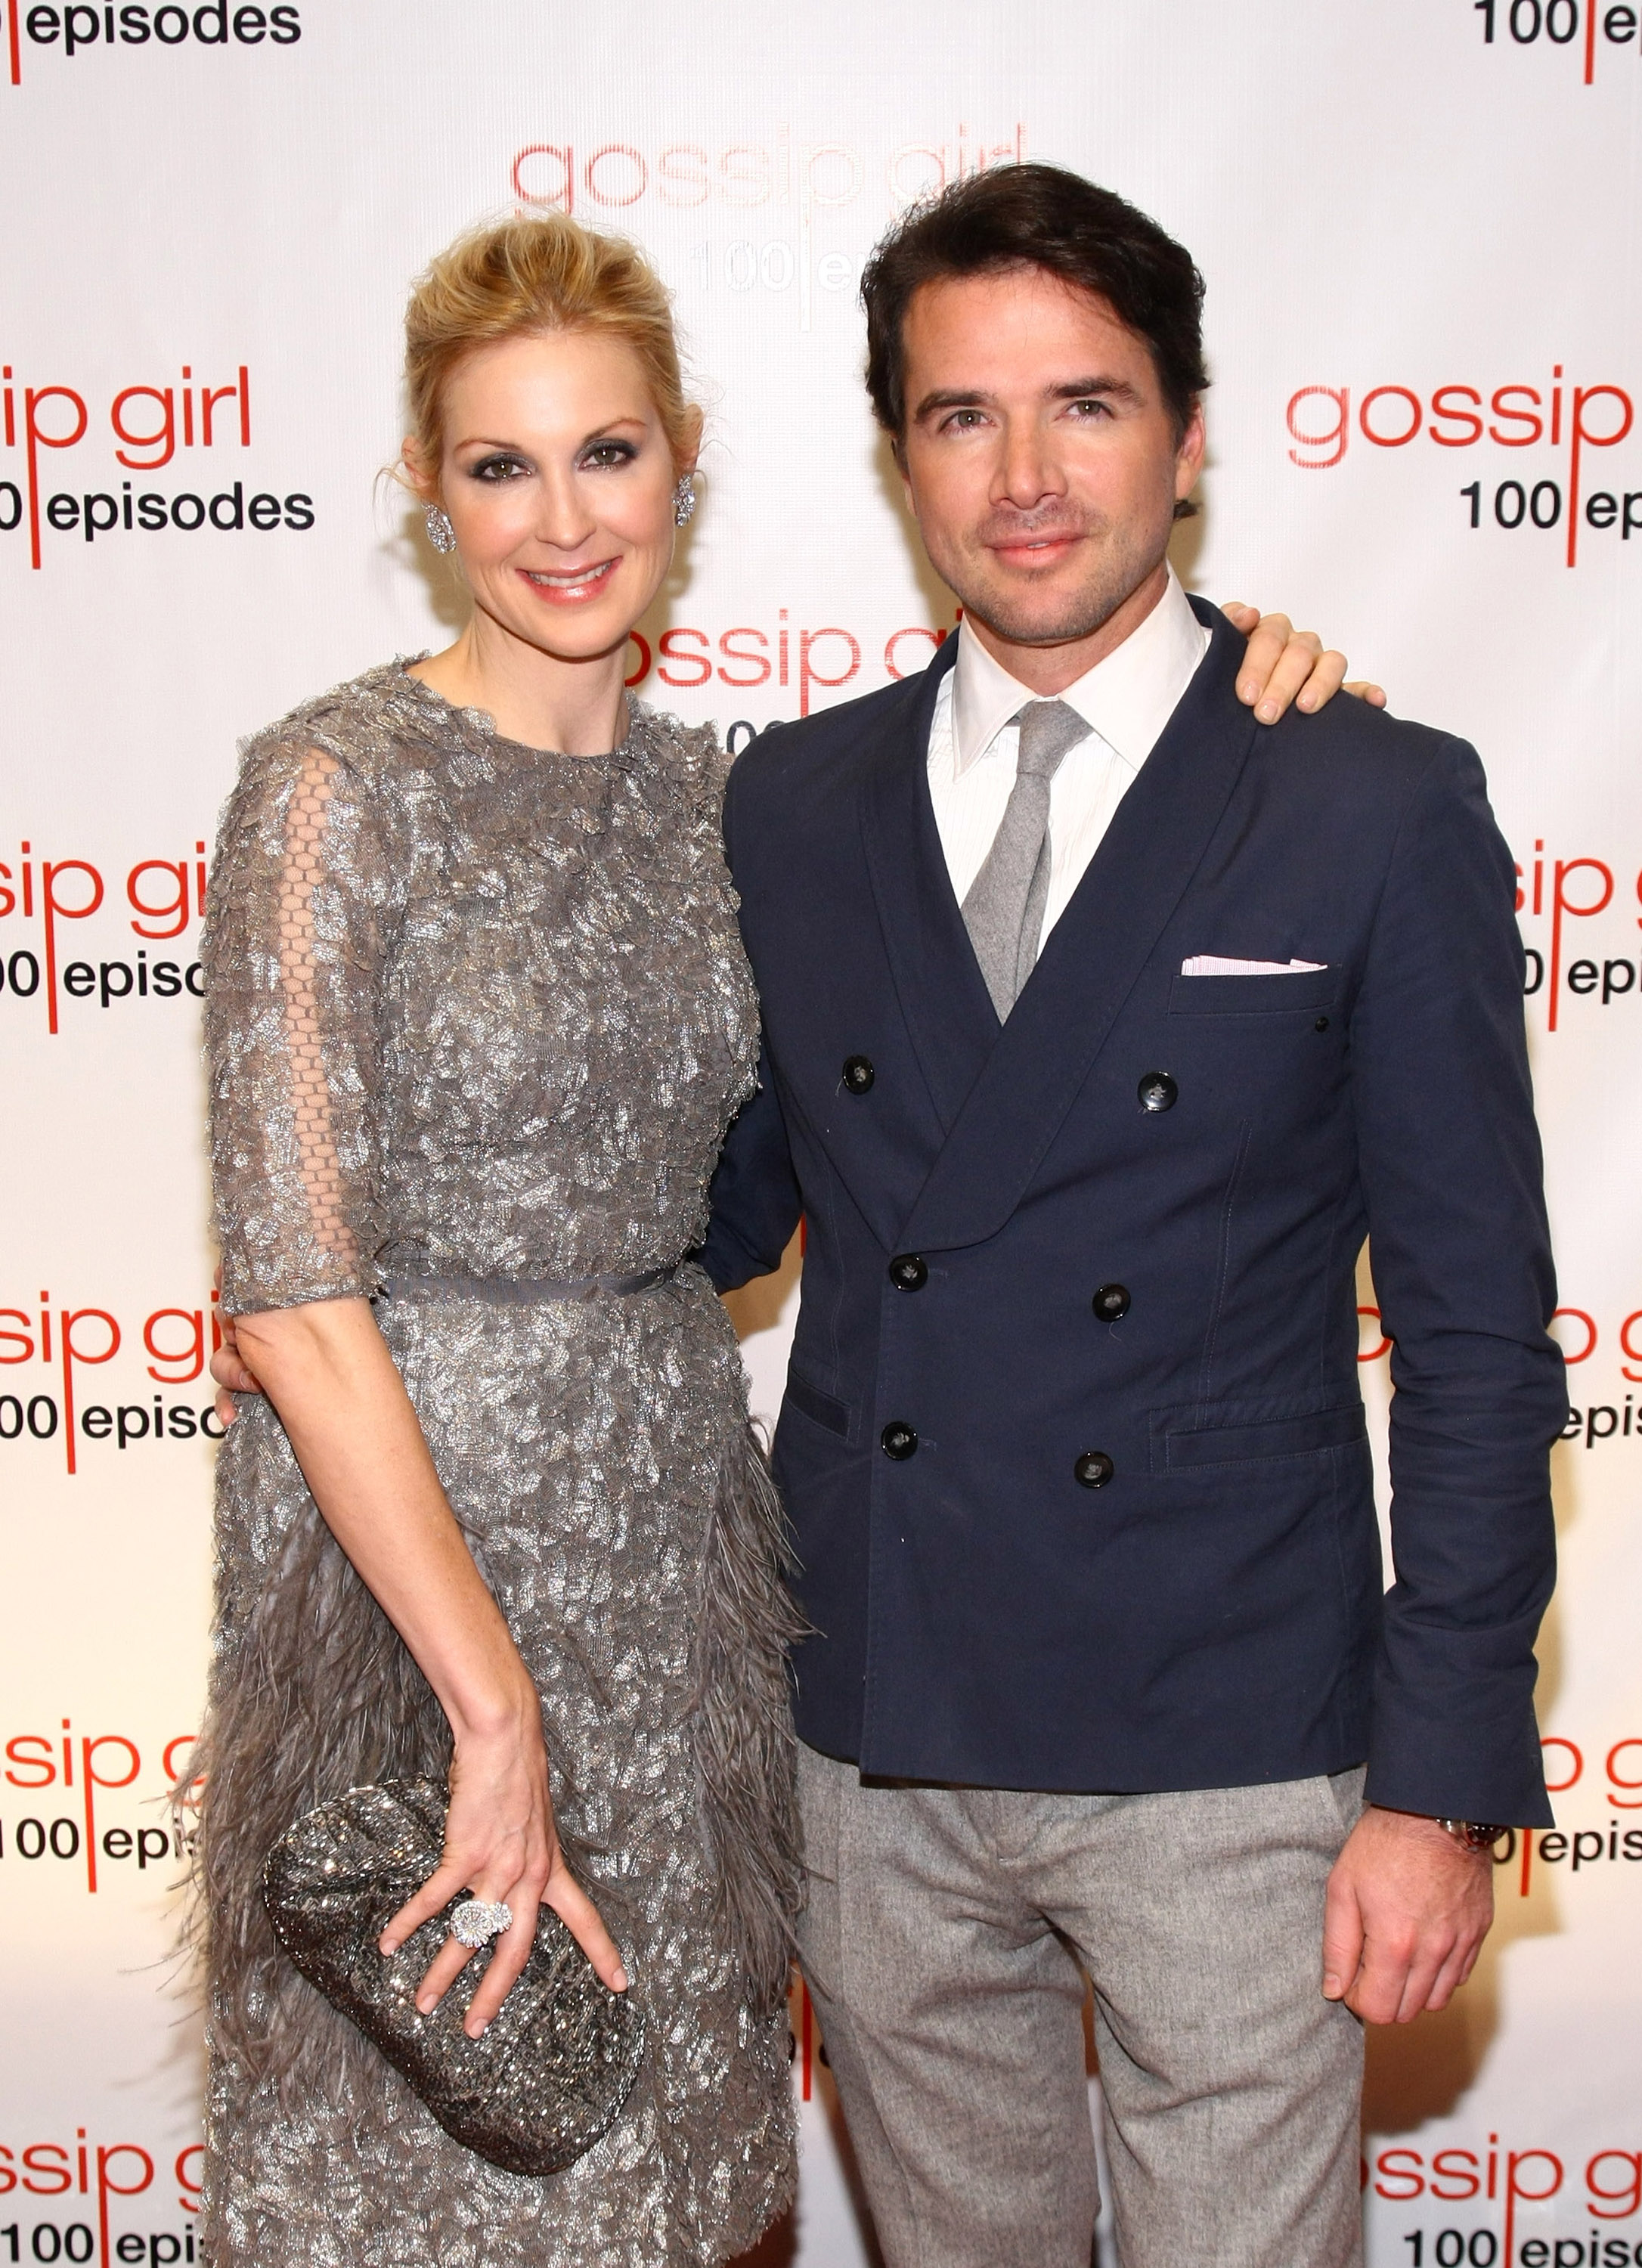 Gossip Girl costars Kelly Rutherford and Matthew Settle snapped a photo arriving at the show's 100th episode celebration in November 2011.